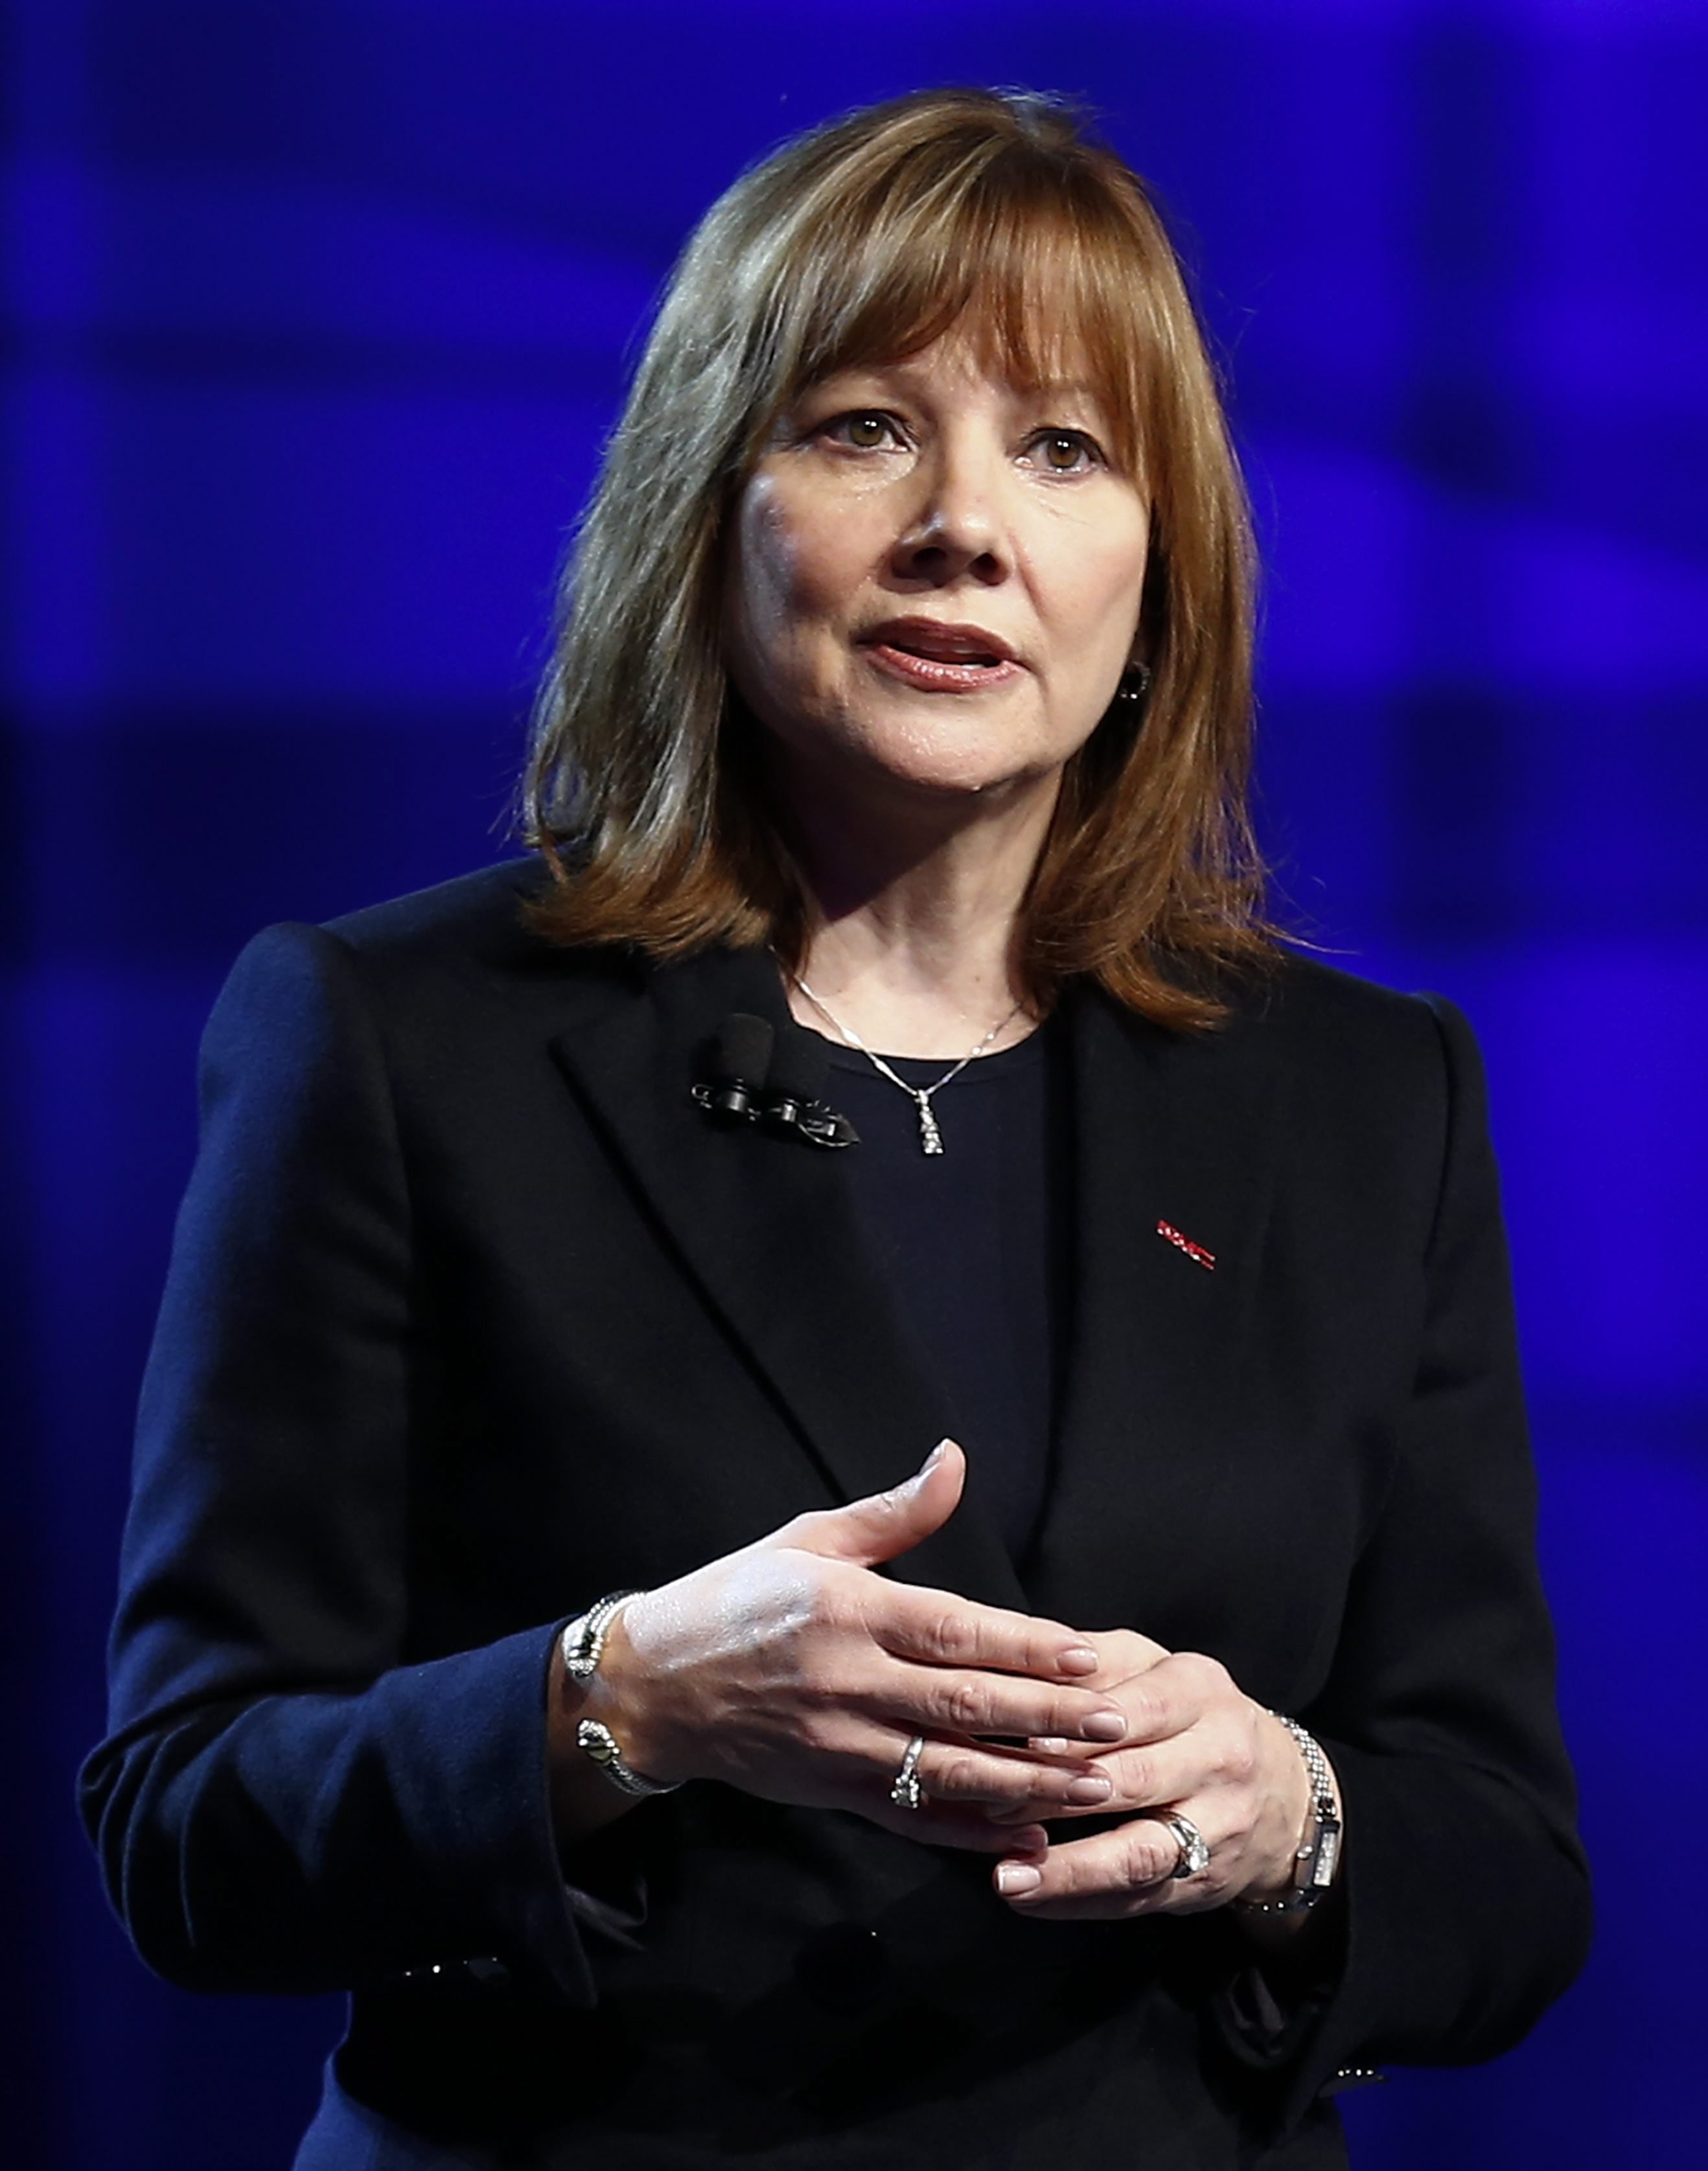 General Motors CEO Mary Barra introduces the 2015 GMC Canyon pick-up truck at the Russell Industrial Center in Detroit, on Jan. 12, 2014.